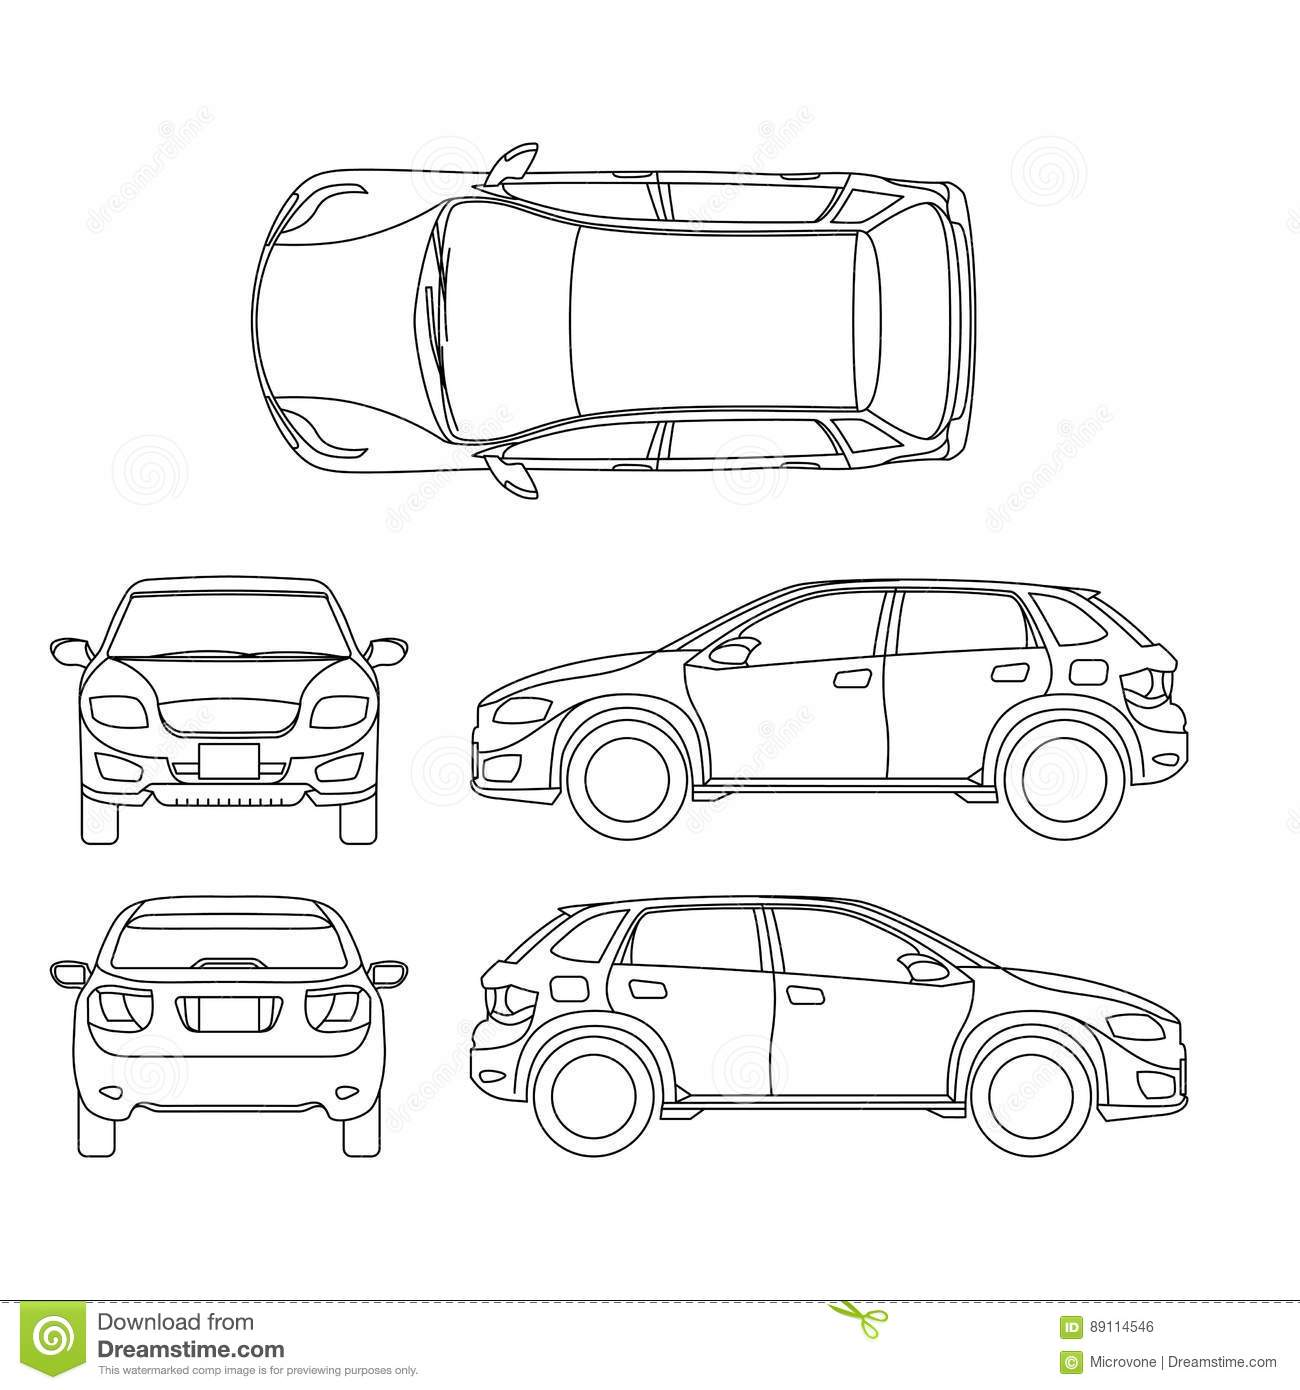 Offroad Suv Auto Outline Vector Vehicle Stock Vector